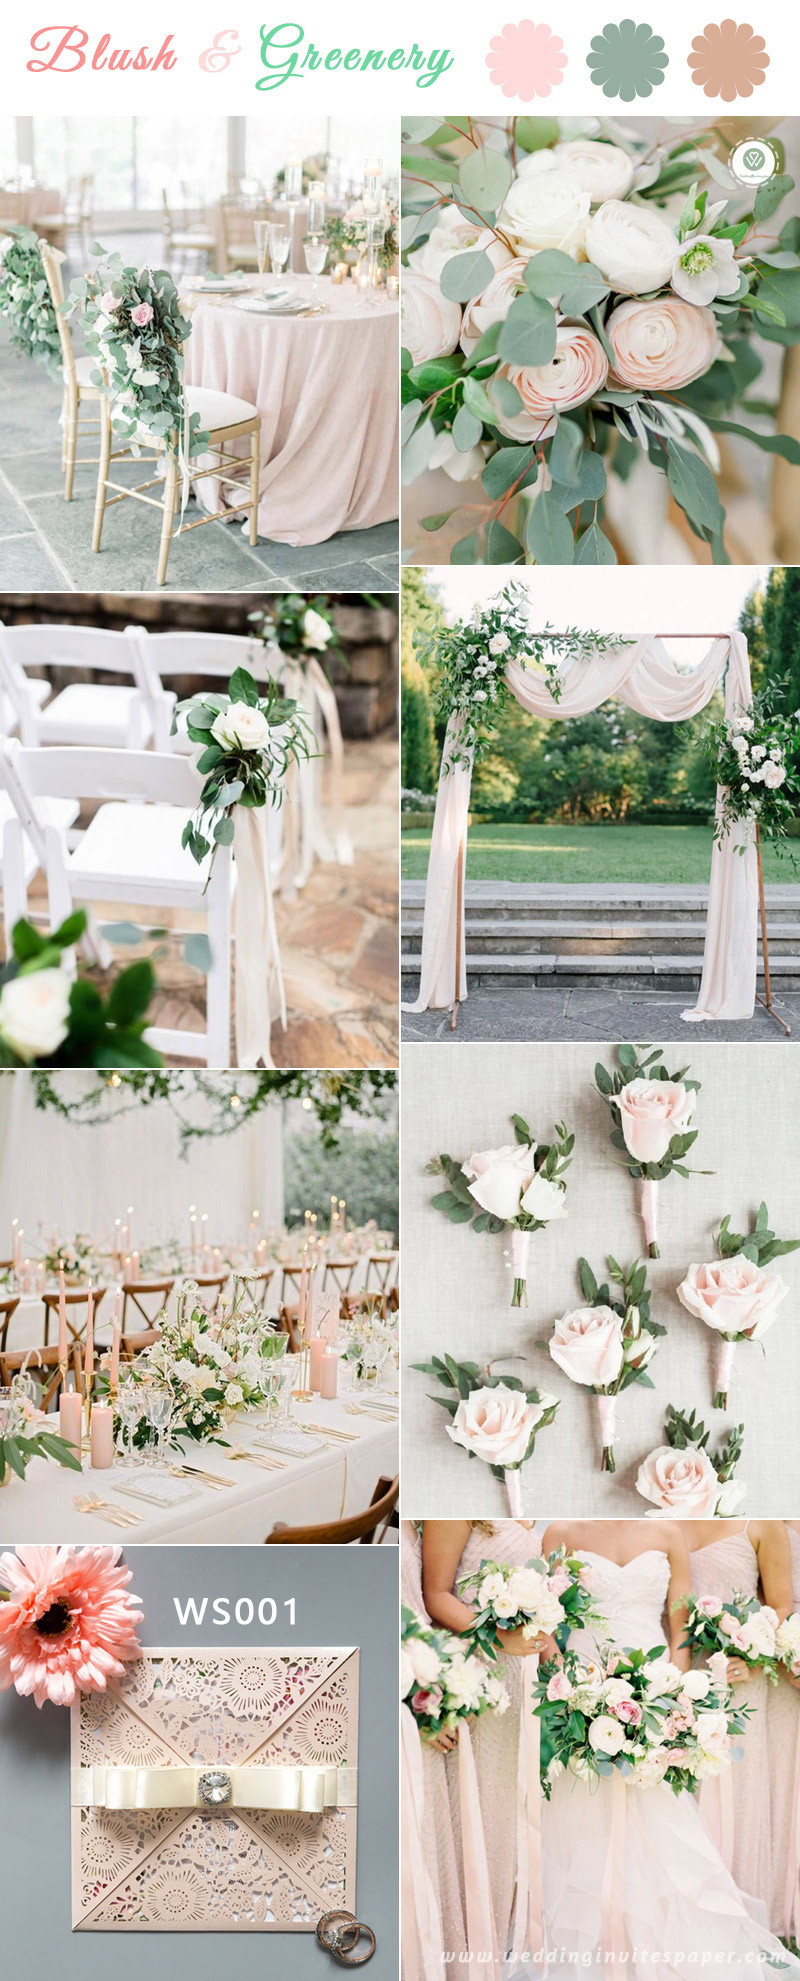 Blush-&-Greenery--,-Spring-Weddings.jpg